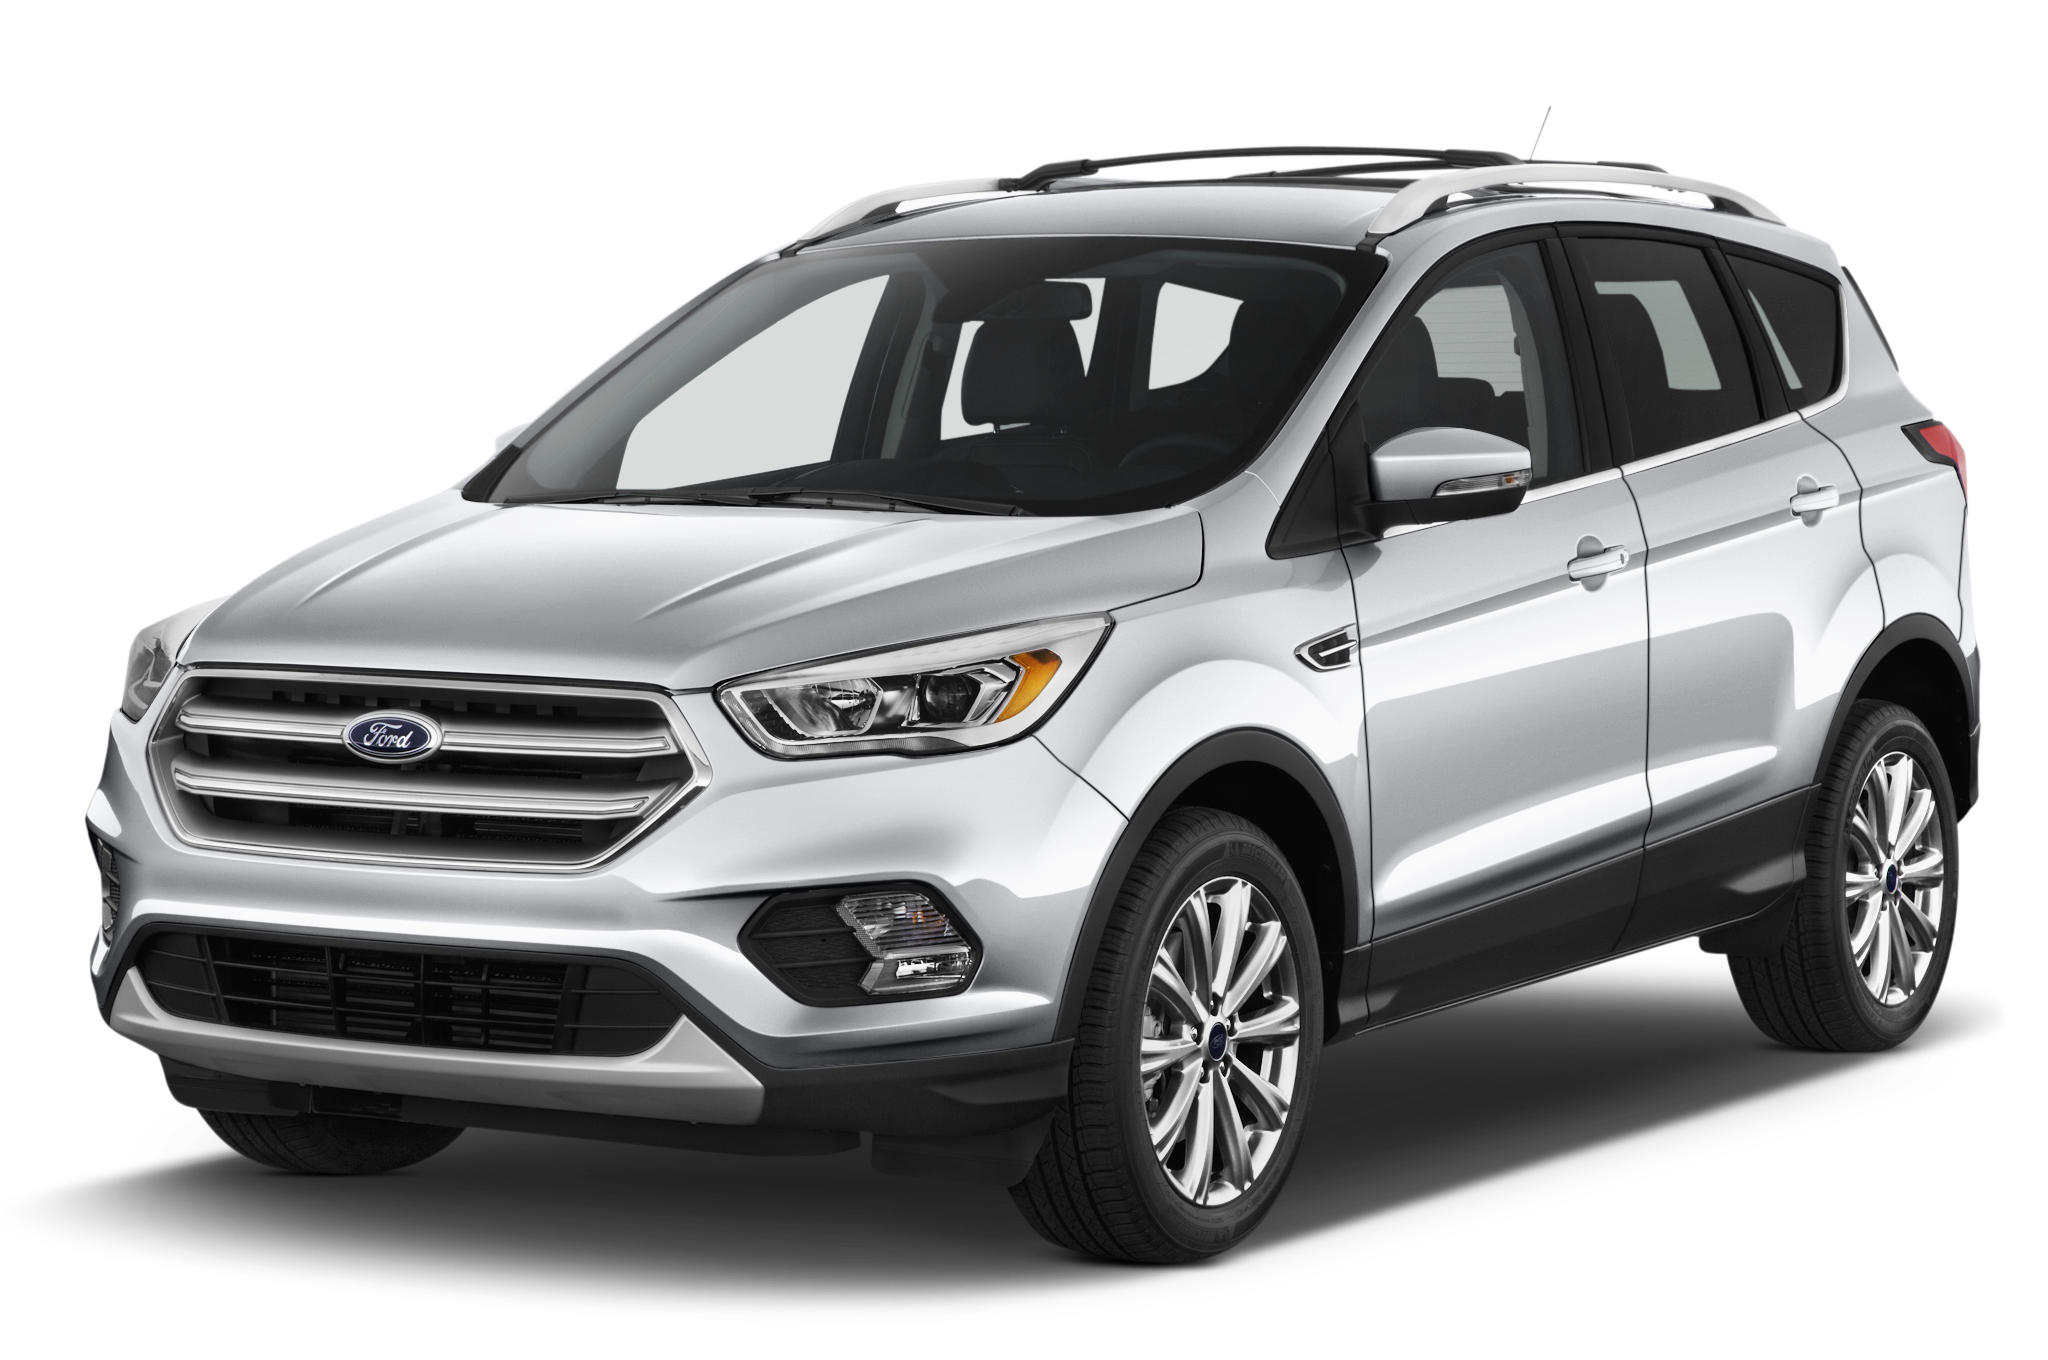 New Ford Escape Albany NY